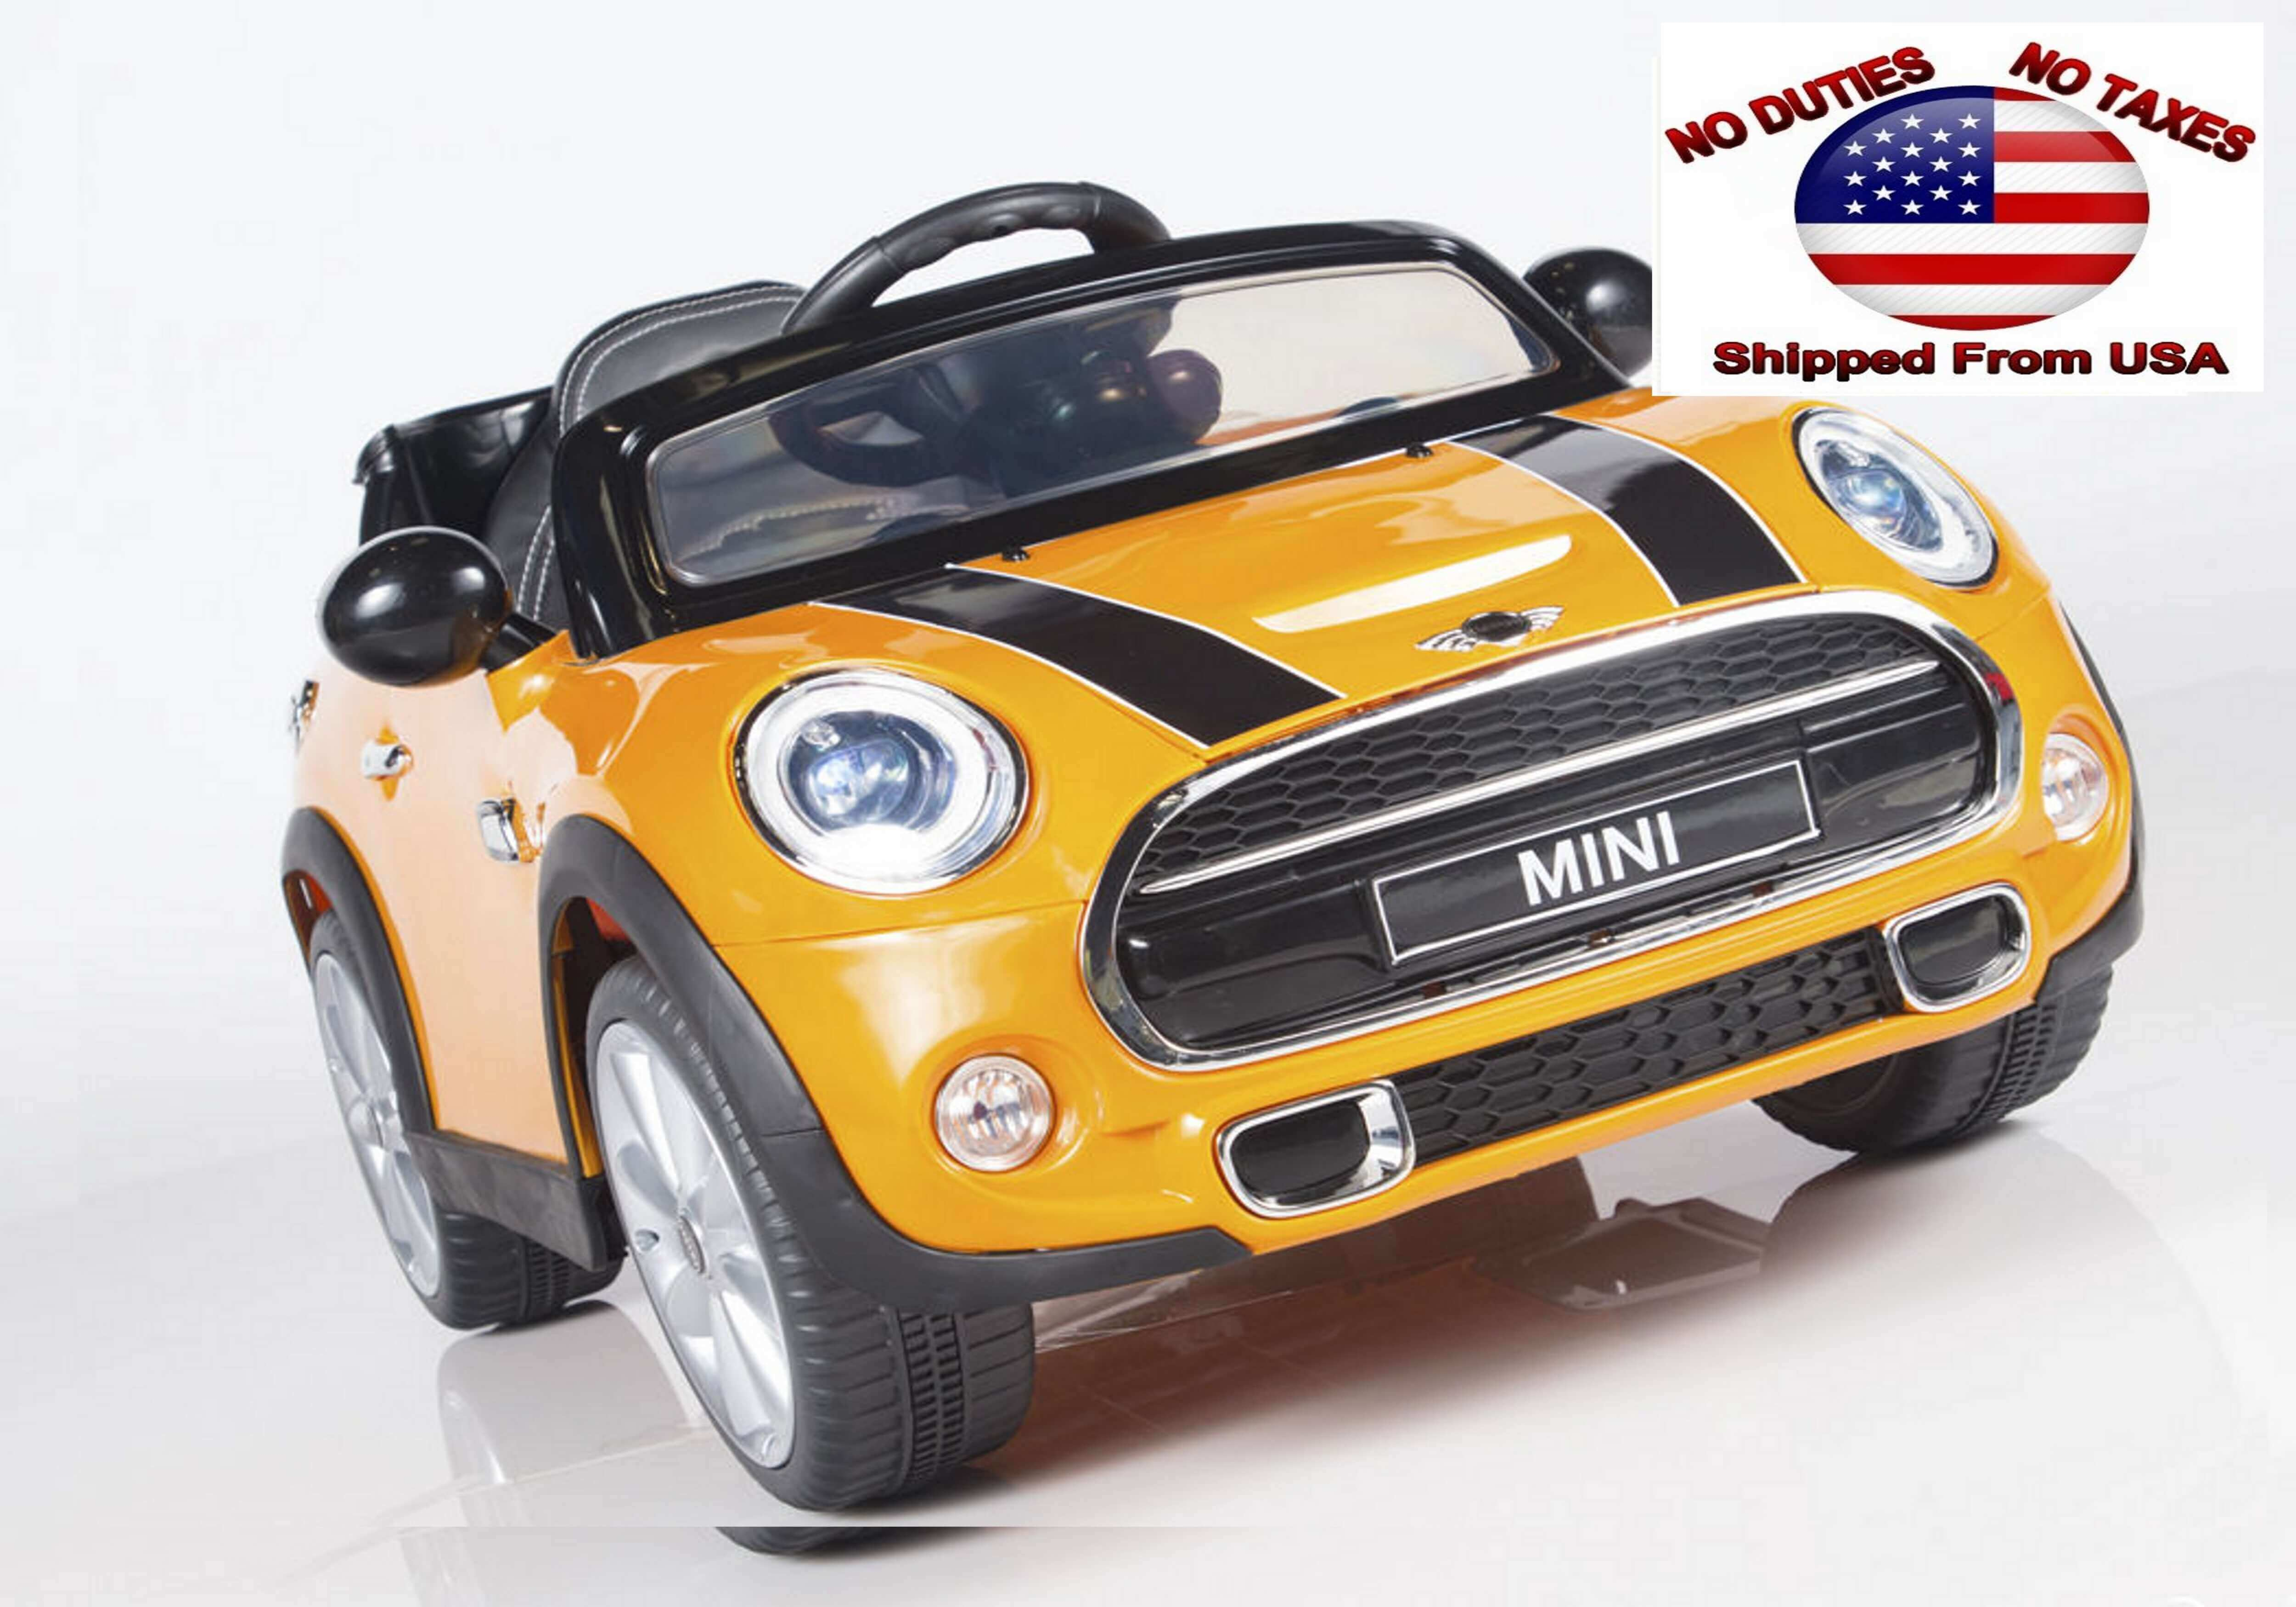 Minicooper Ride On Car Kidsvip 10 3